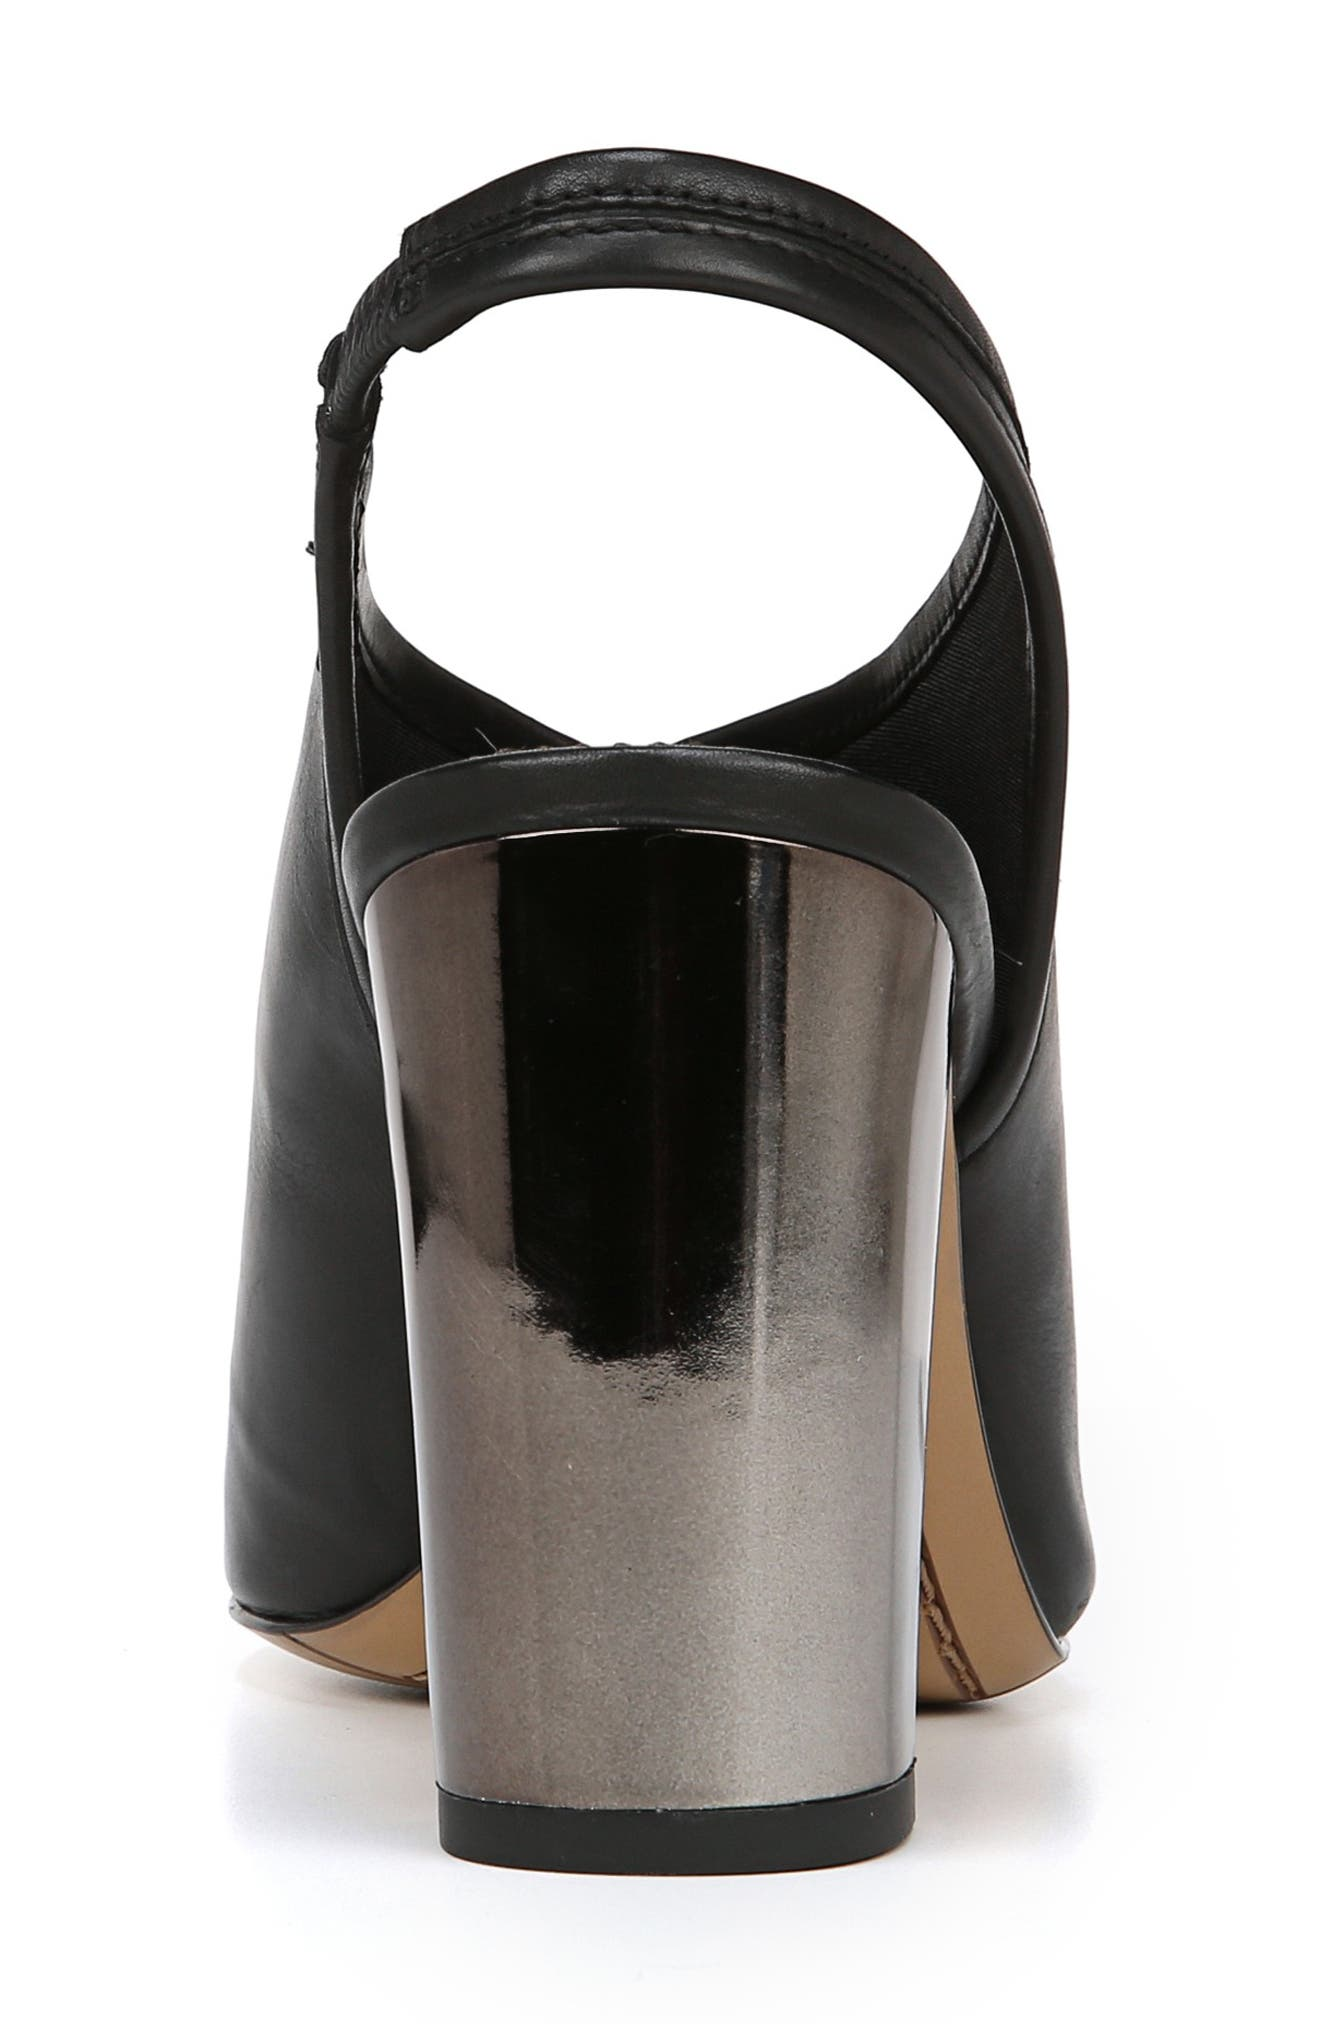 A-Osbourne Slingback Sandal,                             Alternate thumbnail 7, color,                             BLACK FOULARD LEATHER